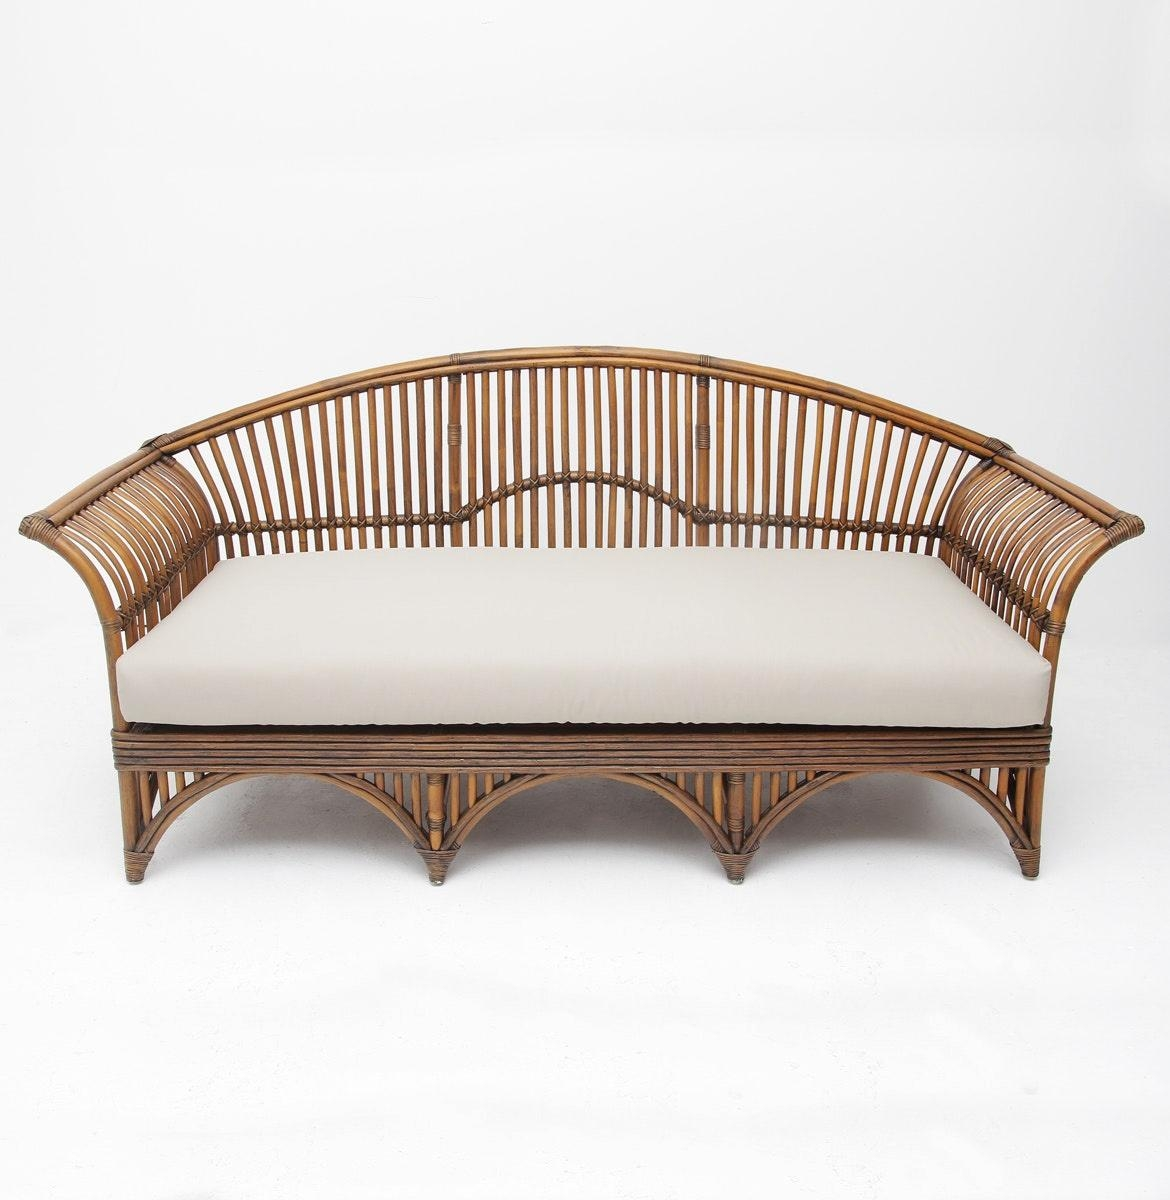 French Cane Sofa Daybed Vintage French Picture On Excellent Cane Pertaining To Cane Sofas (View 15 of 20)